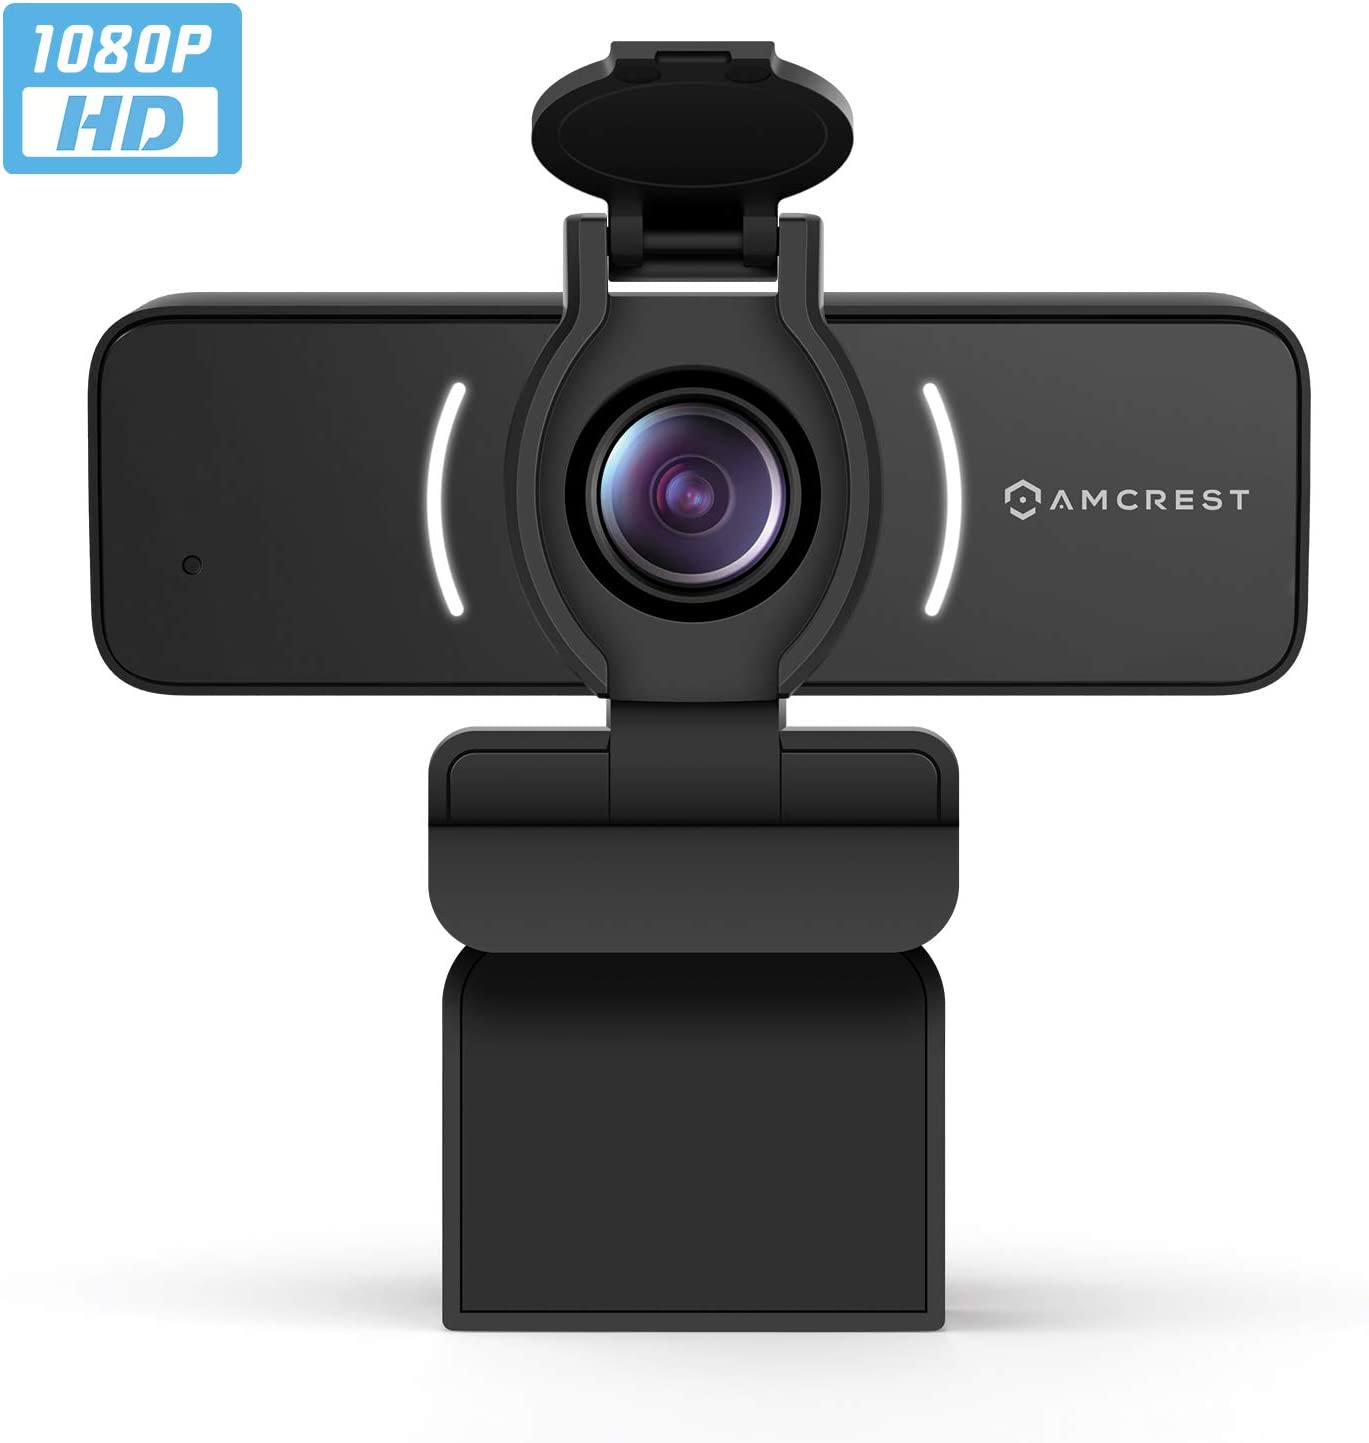 Amcrest 1080P Webcam with Microphone & Privacy Cover, Web Cam USB Camera, Computer HD Streaming Webcam for PC Desktop & Laptop w/Mic, Wide Angle Lens & Large Sensor for Superior Low Light (AWC205)